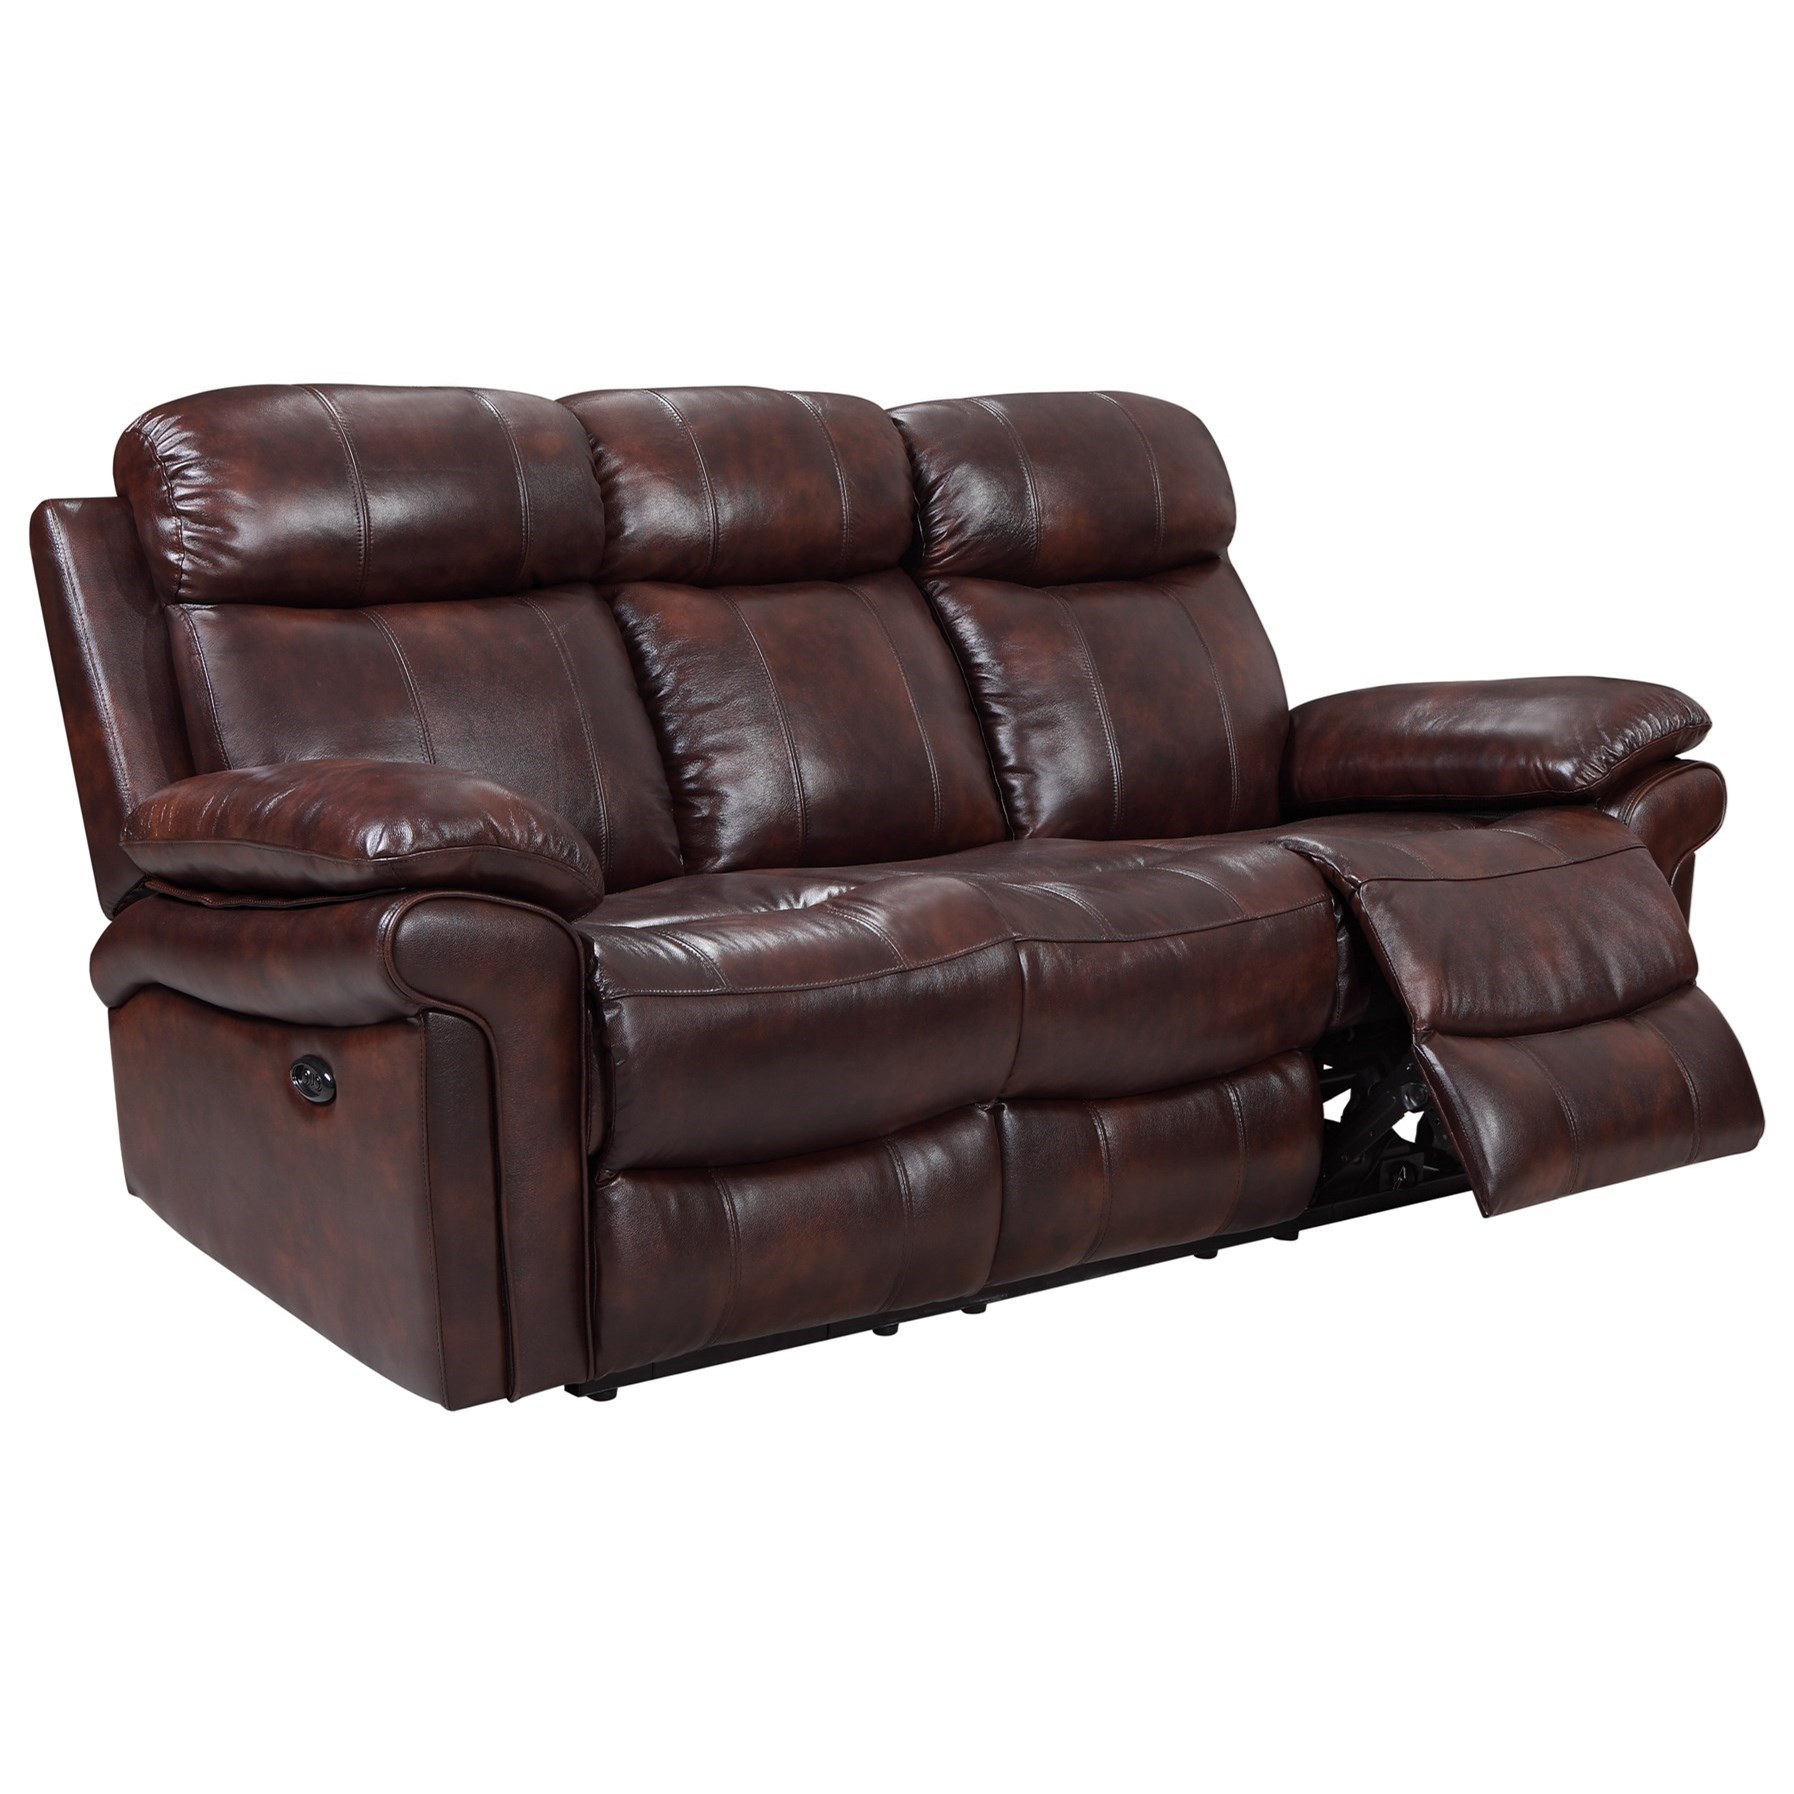 Janis Power Reclining Leather Sofa Rotmans Reclining Sofas